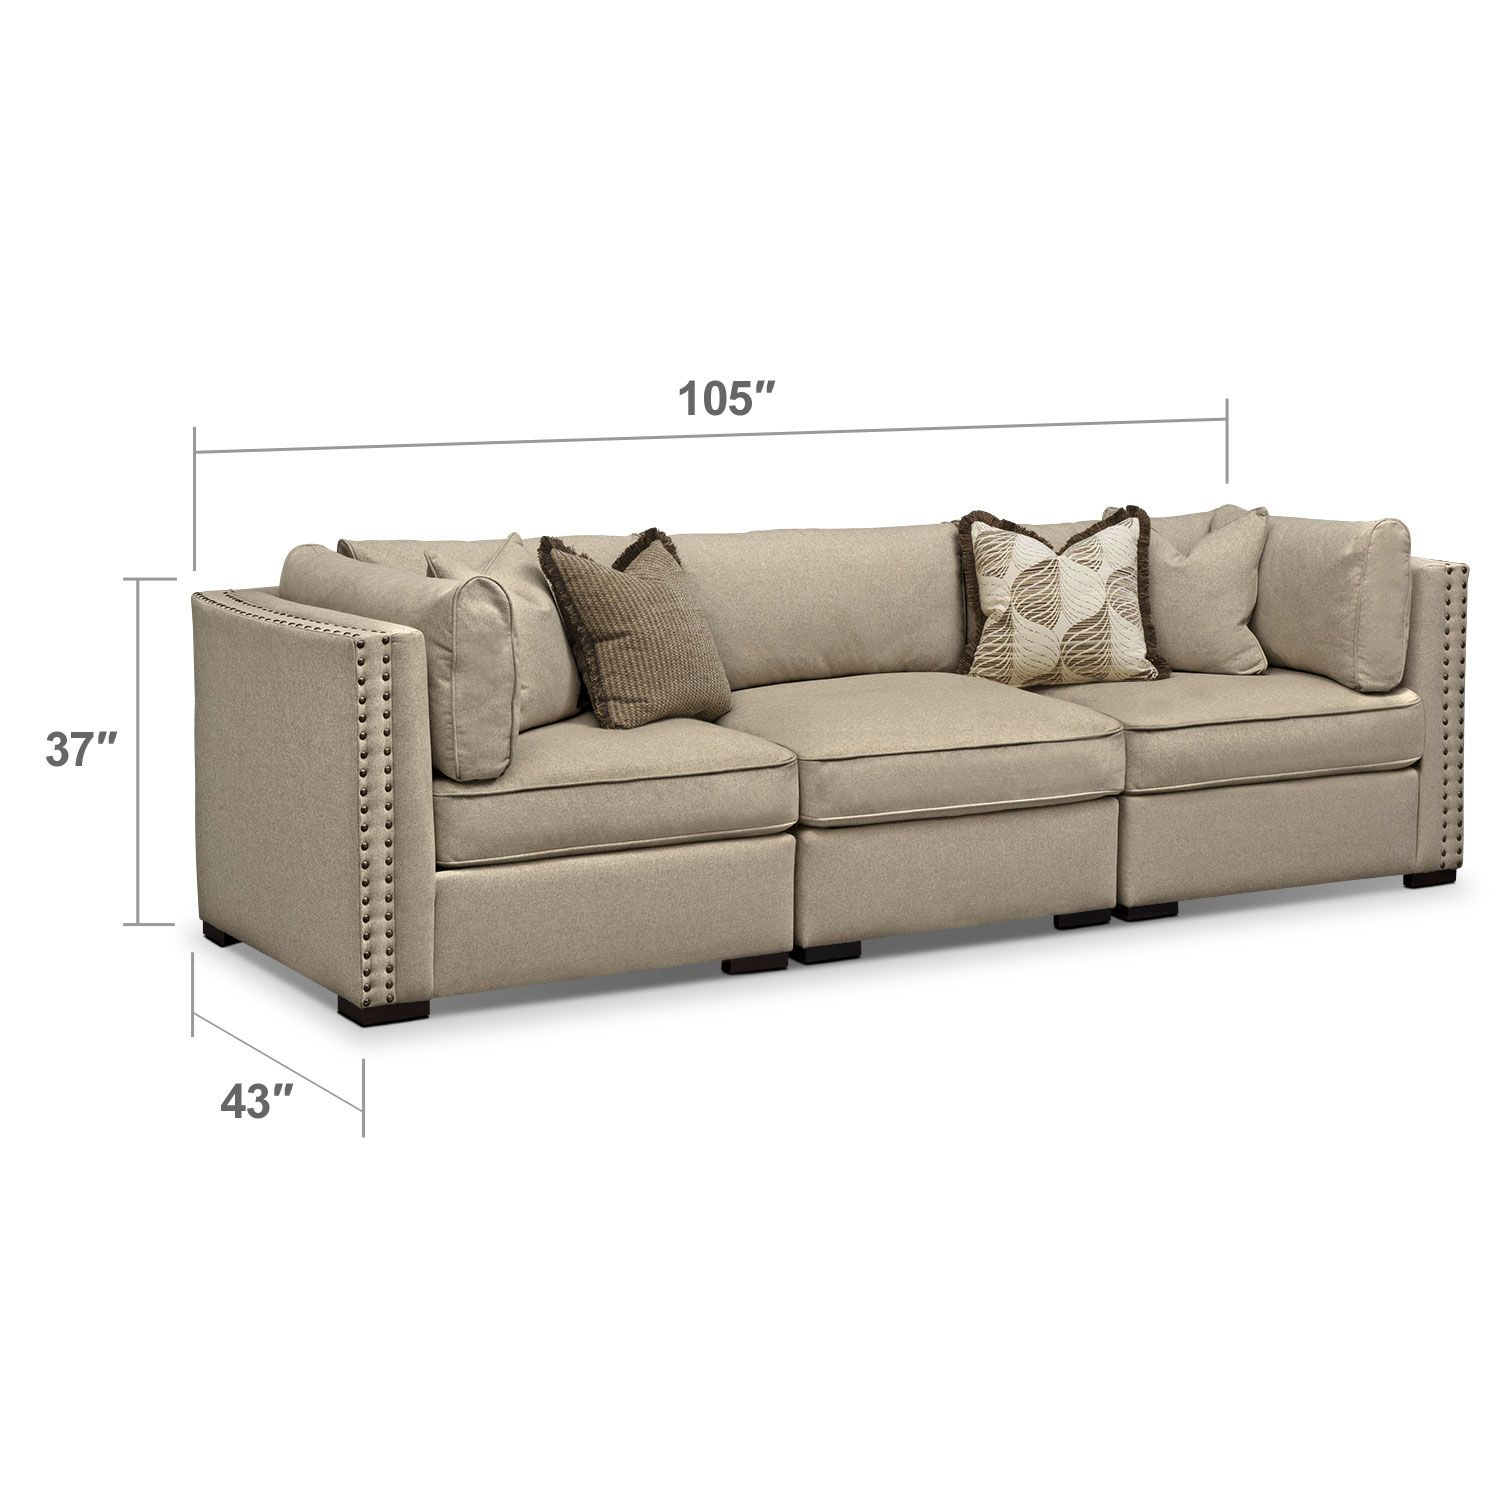 With Its Sandy Taupe Hue And Its Low Profile, The Athens Sectional Sofa  From Ultimate Comfort By Kroehler™ Makes A Magnificent Addition To Many  Design ...